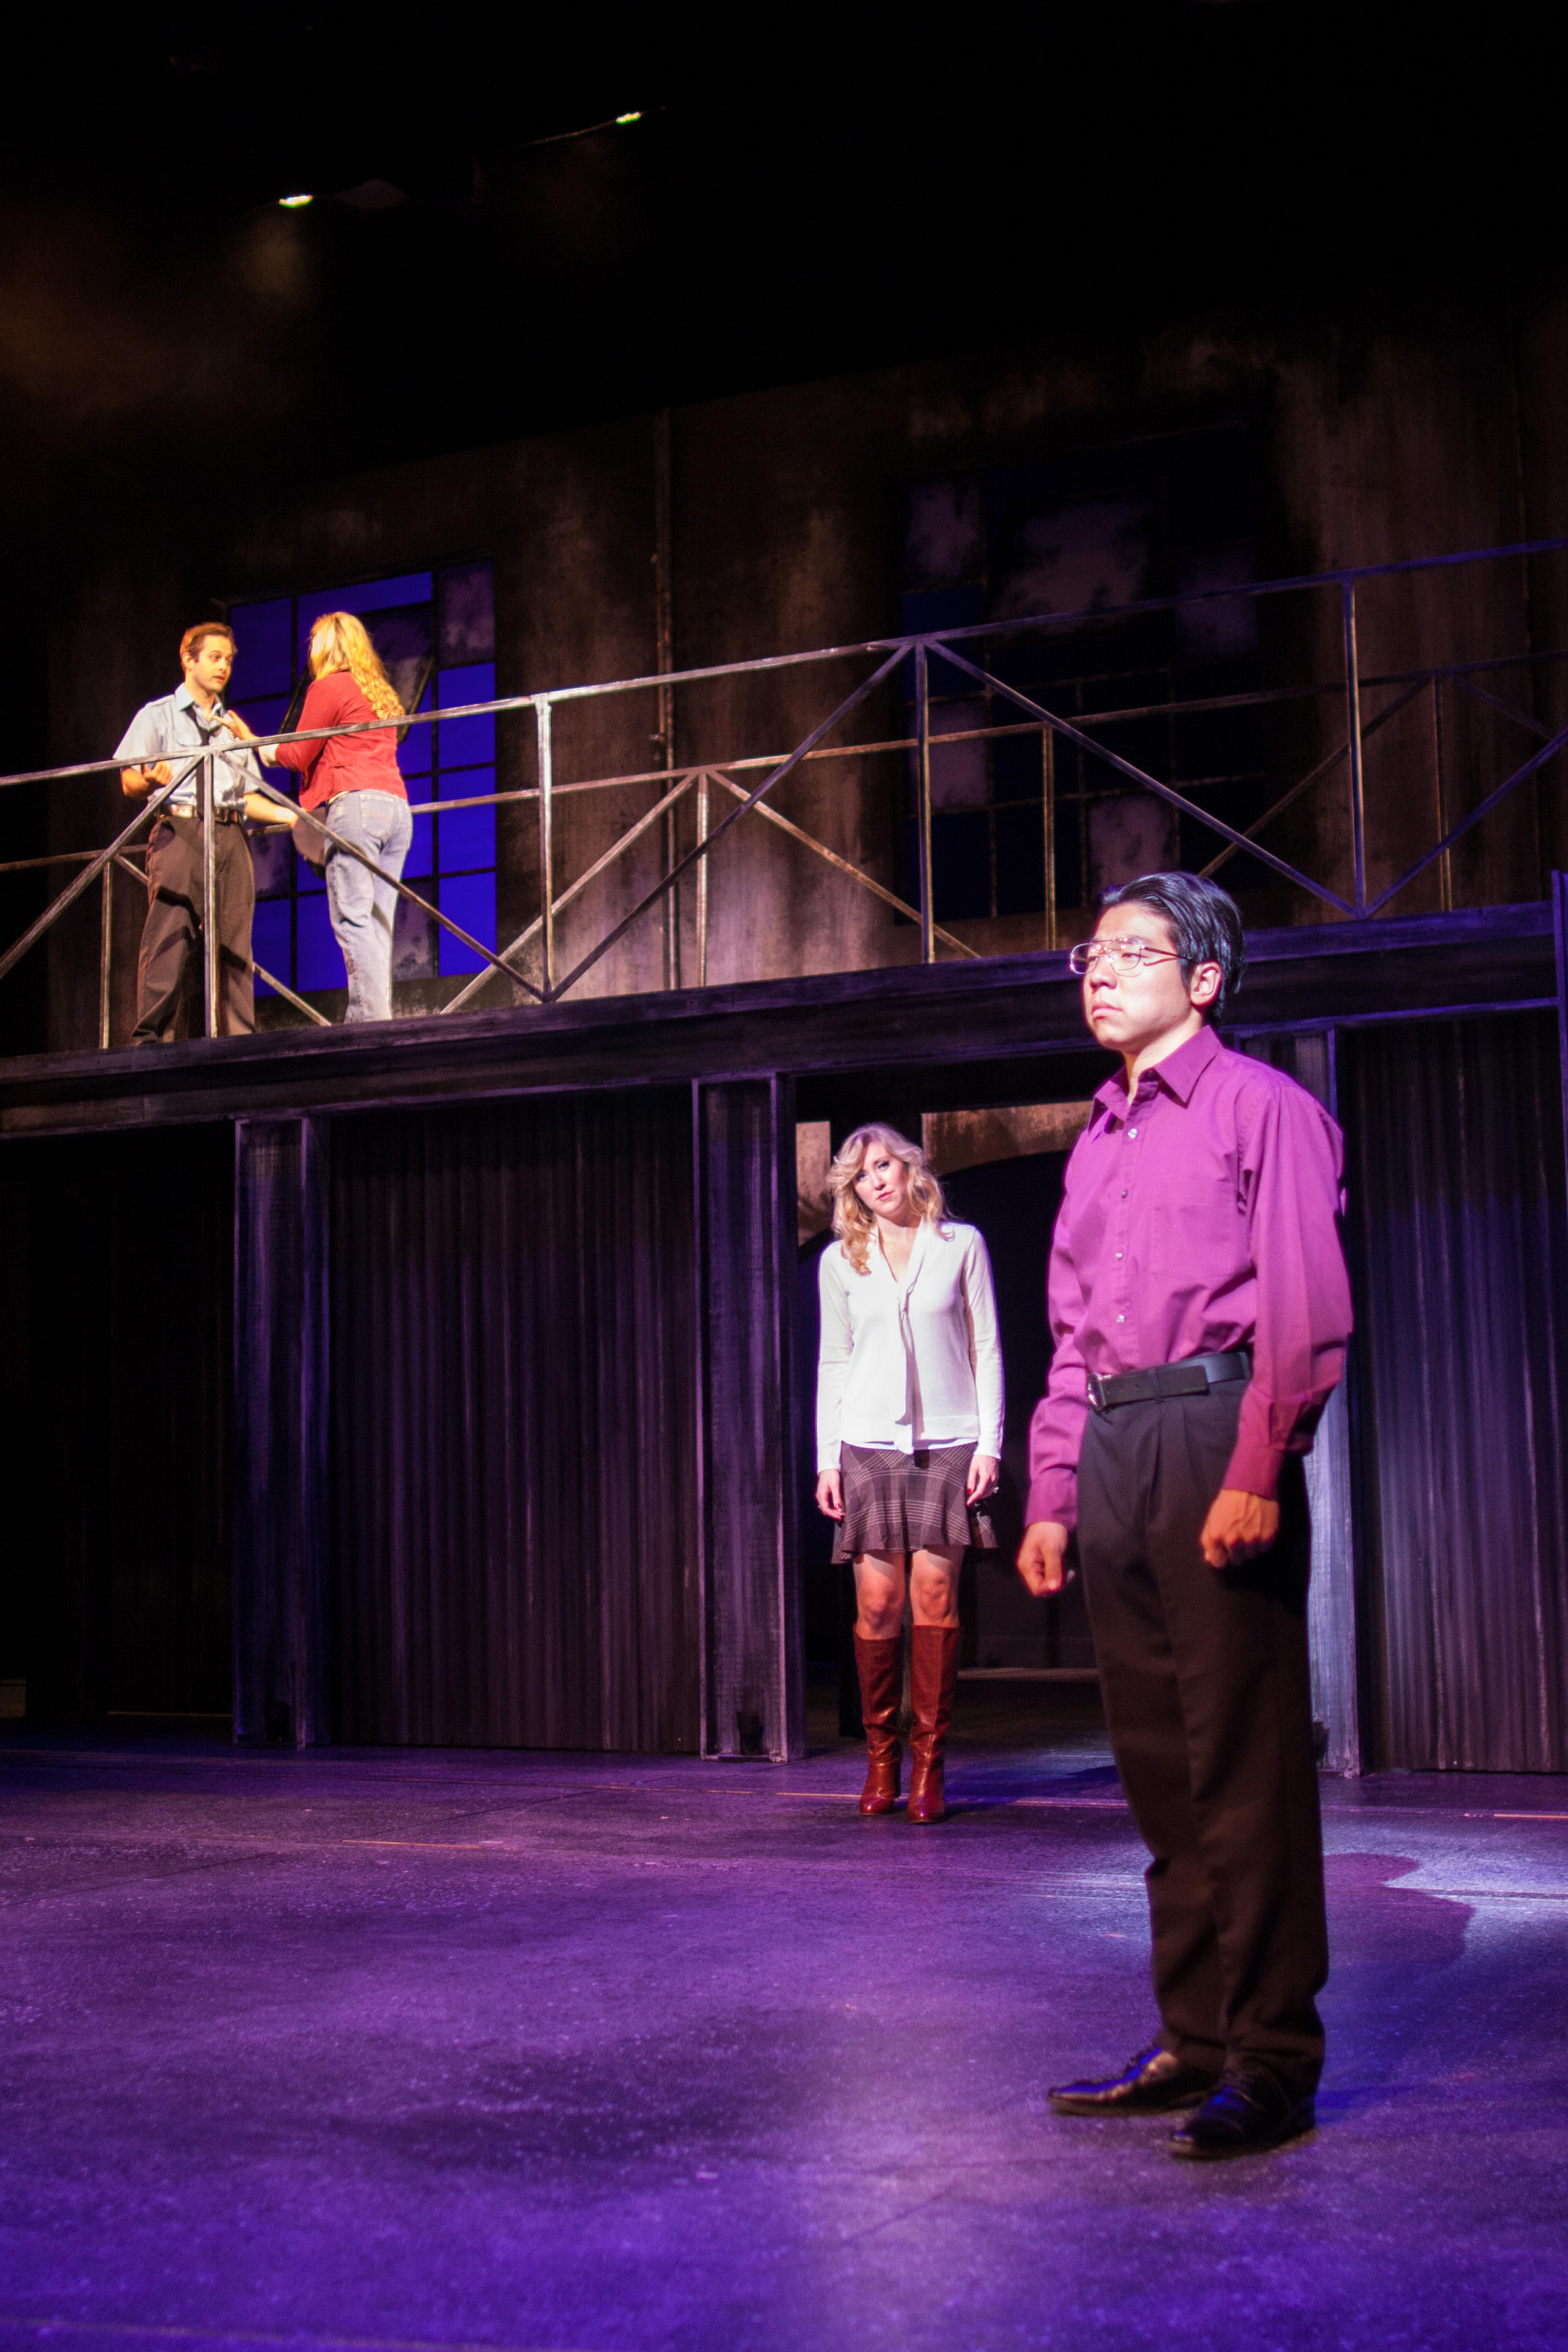 """You Rule My World (Reprise)""  Dave (Jonathan Brugioni), Georgie (Audrey Pennington), Vicki (Kimberly Moller), & Harold (Leo Yu-Ning Chang)  Photo courtesy of Stephen M. Woo."